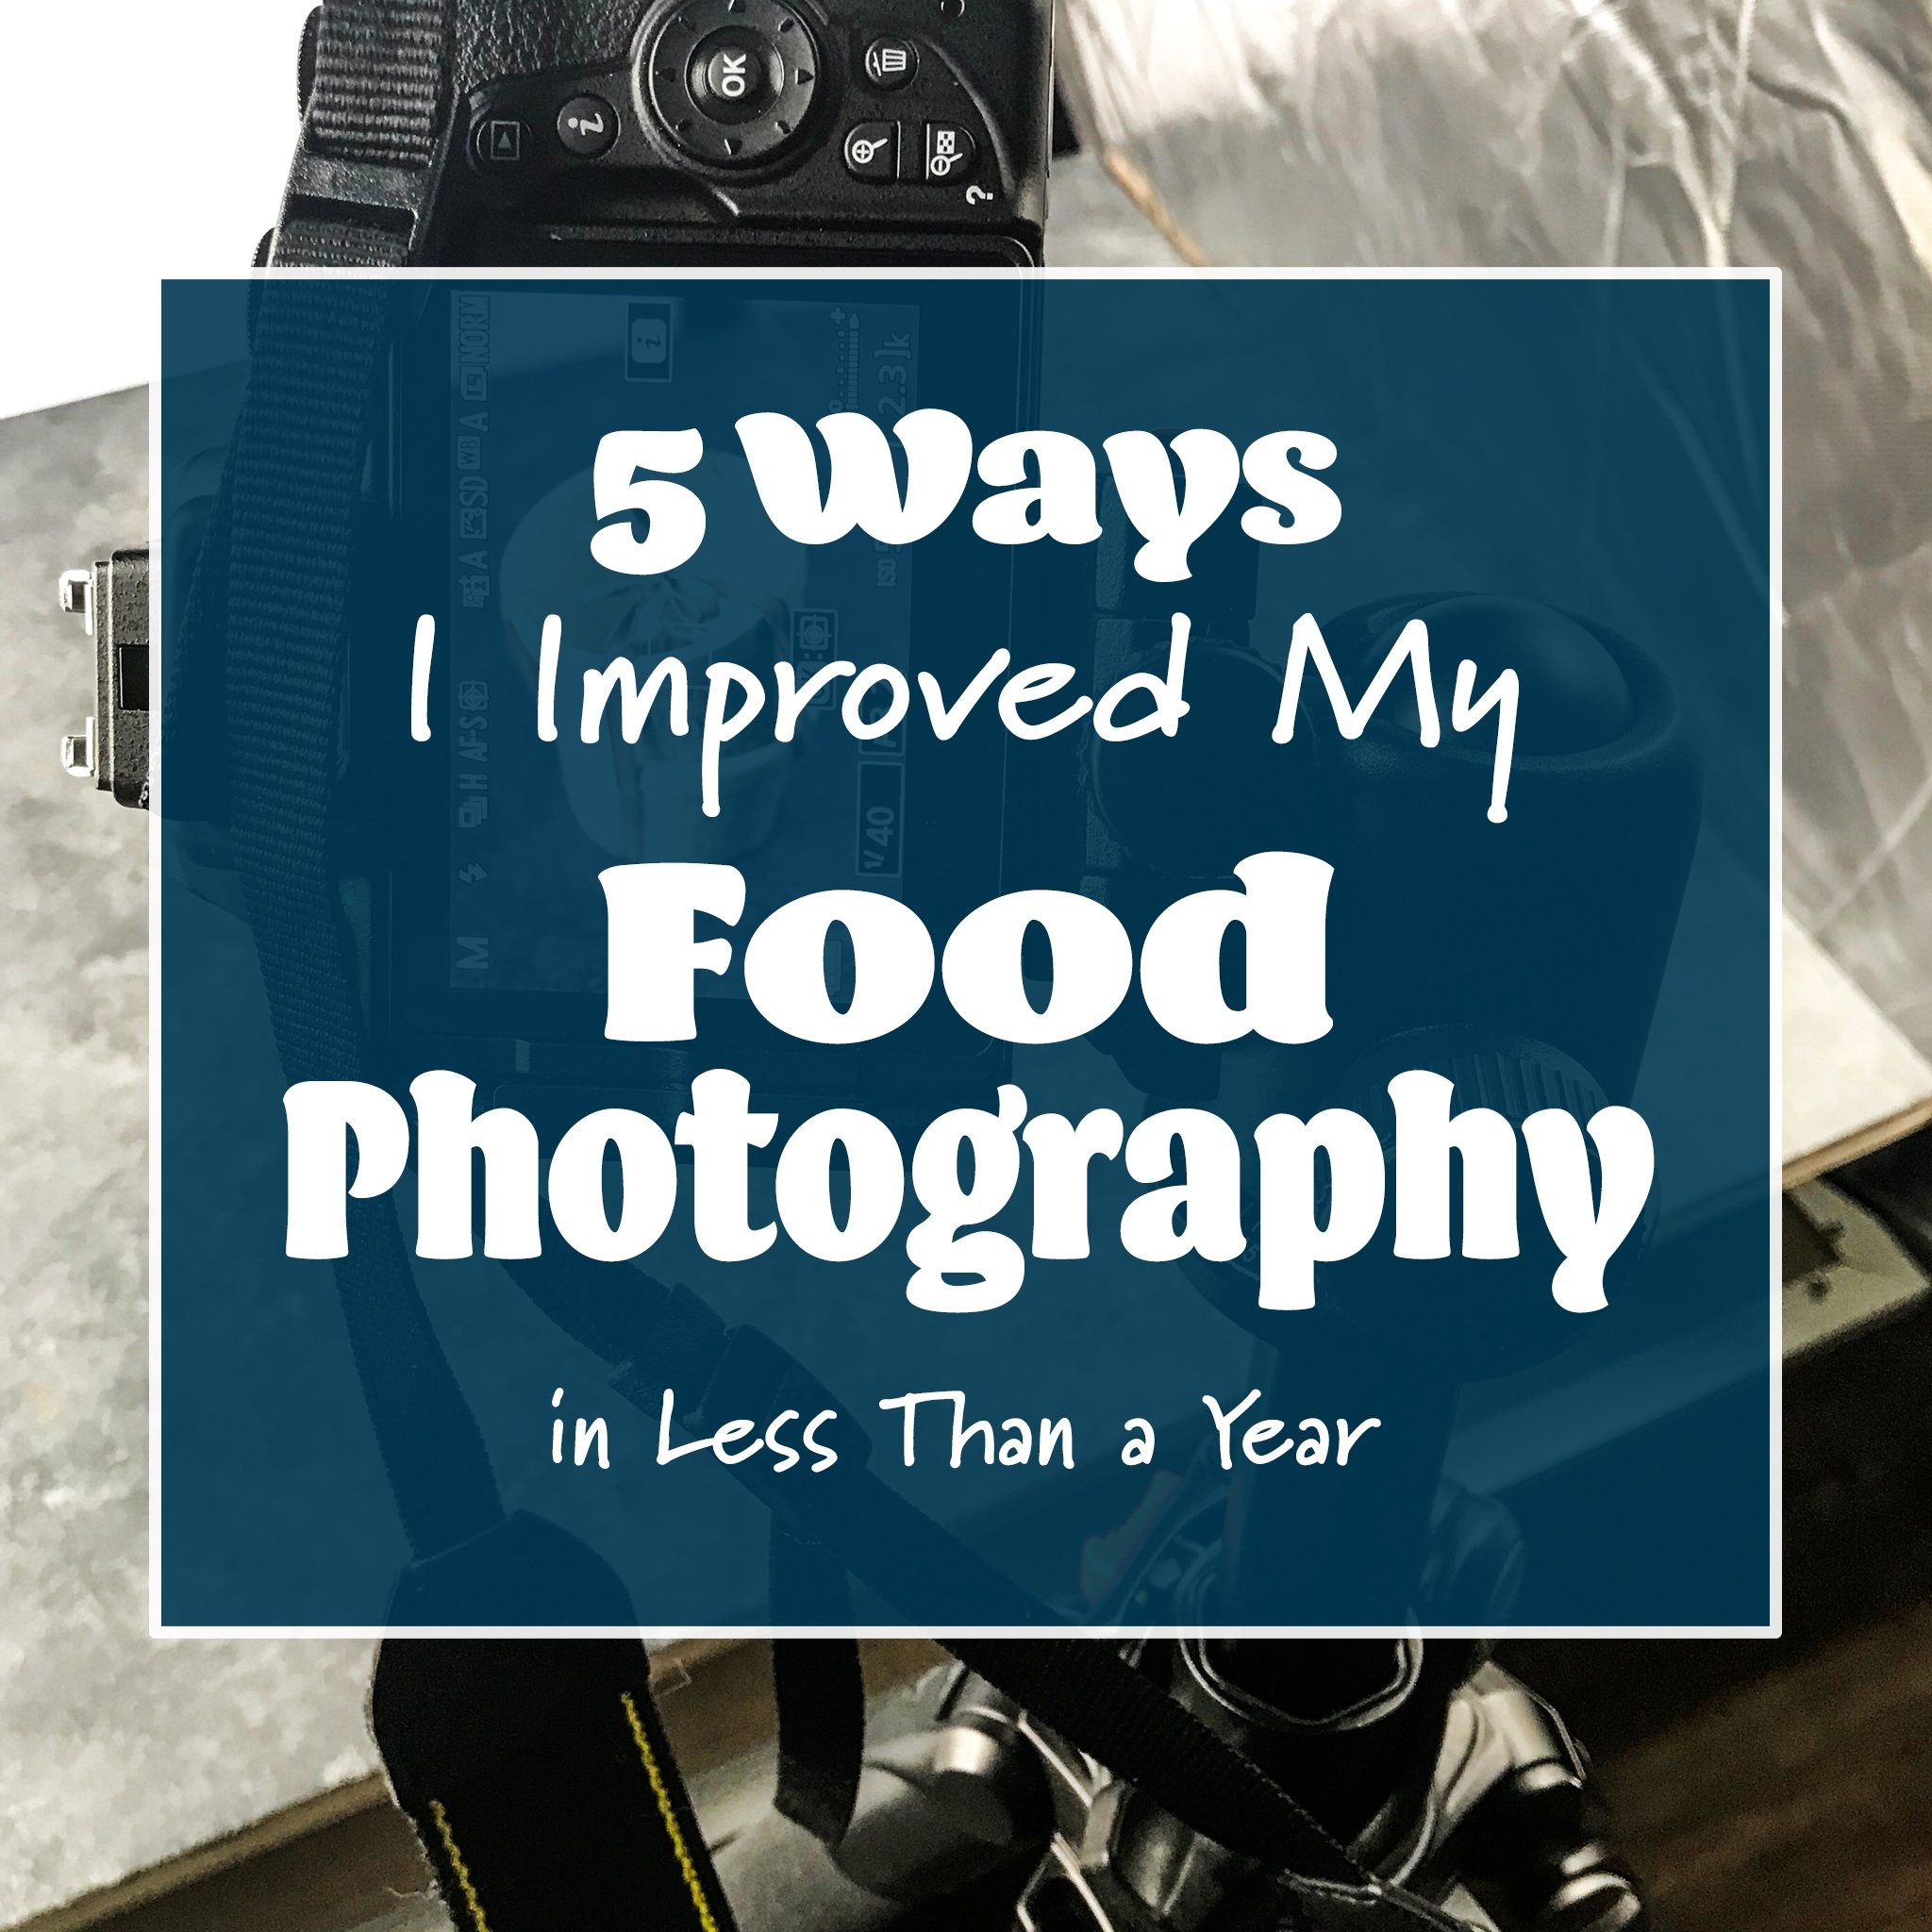 Cover photo for 5 Ways I improved my Food Photography in Less Than a Year.